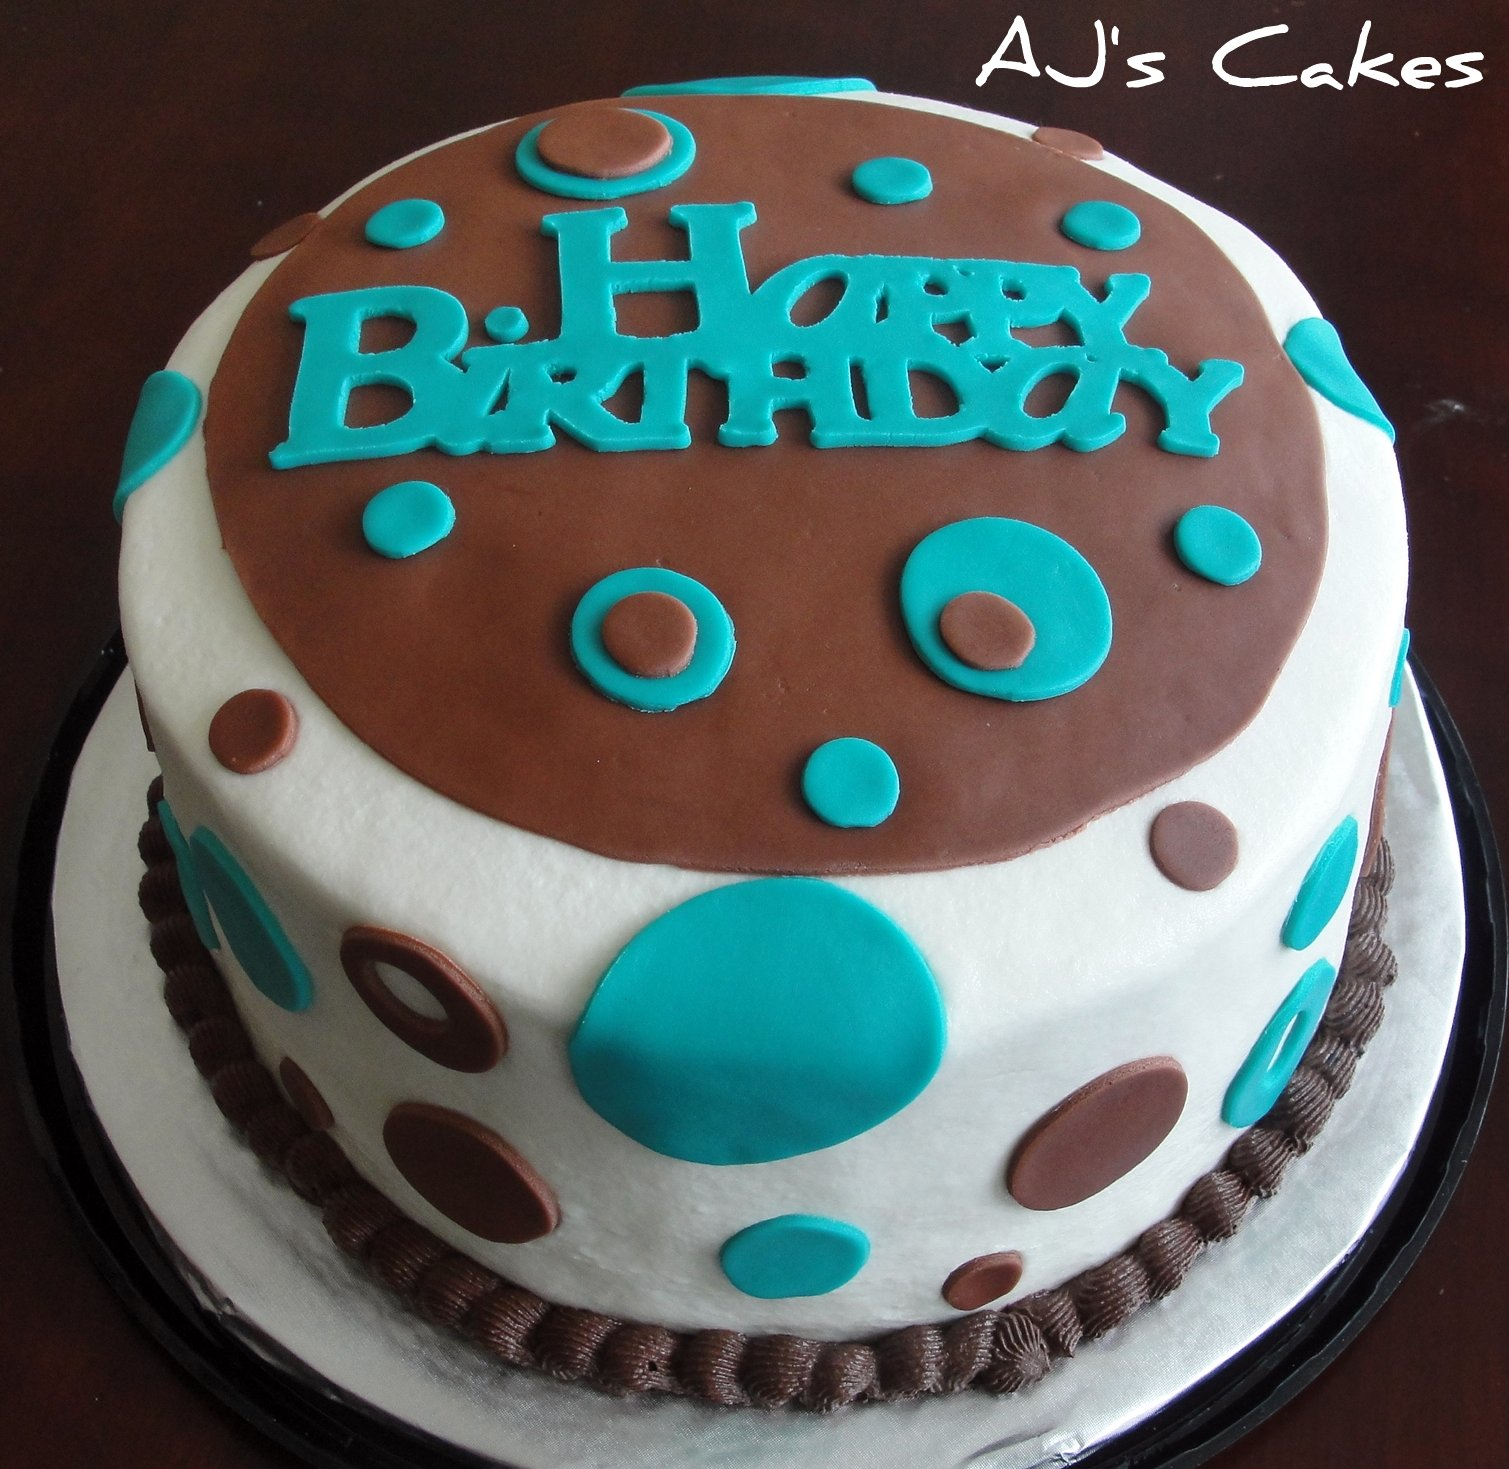 Birthday Cake Design Gallery : AJ s Cakes: Teal and Brown Birthday Cake